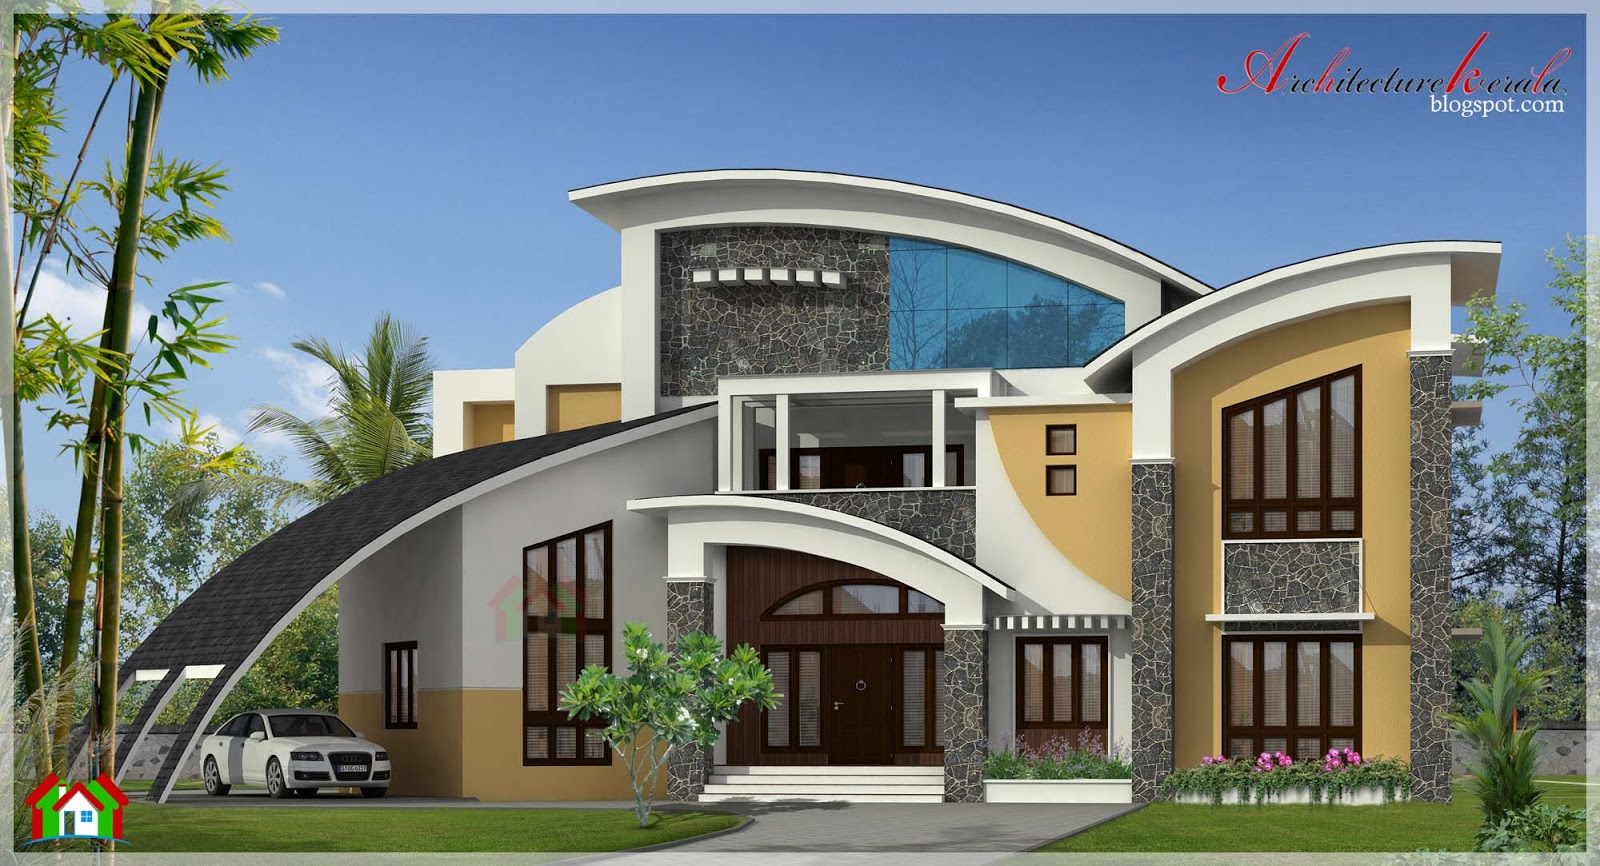 Architecture kerala 5800 square feet contemporary style Modern house architecture wikipedia